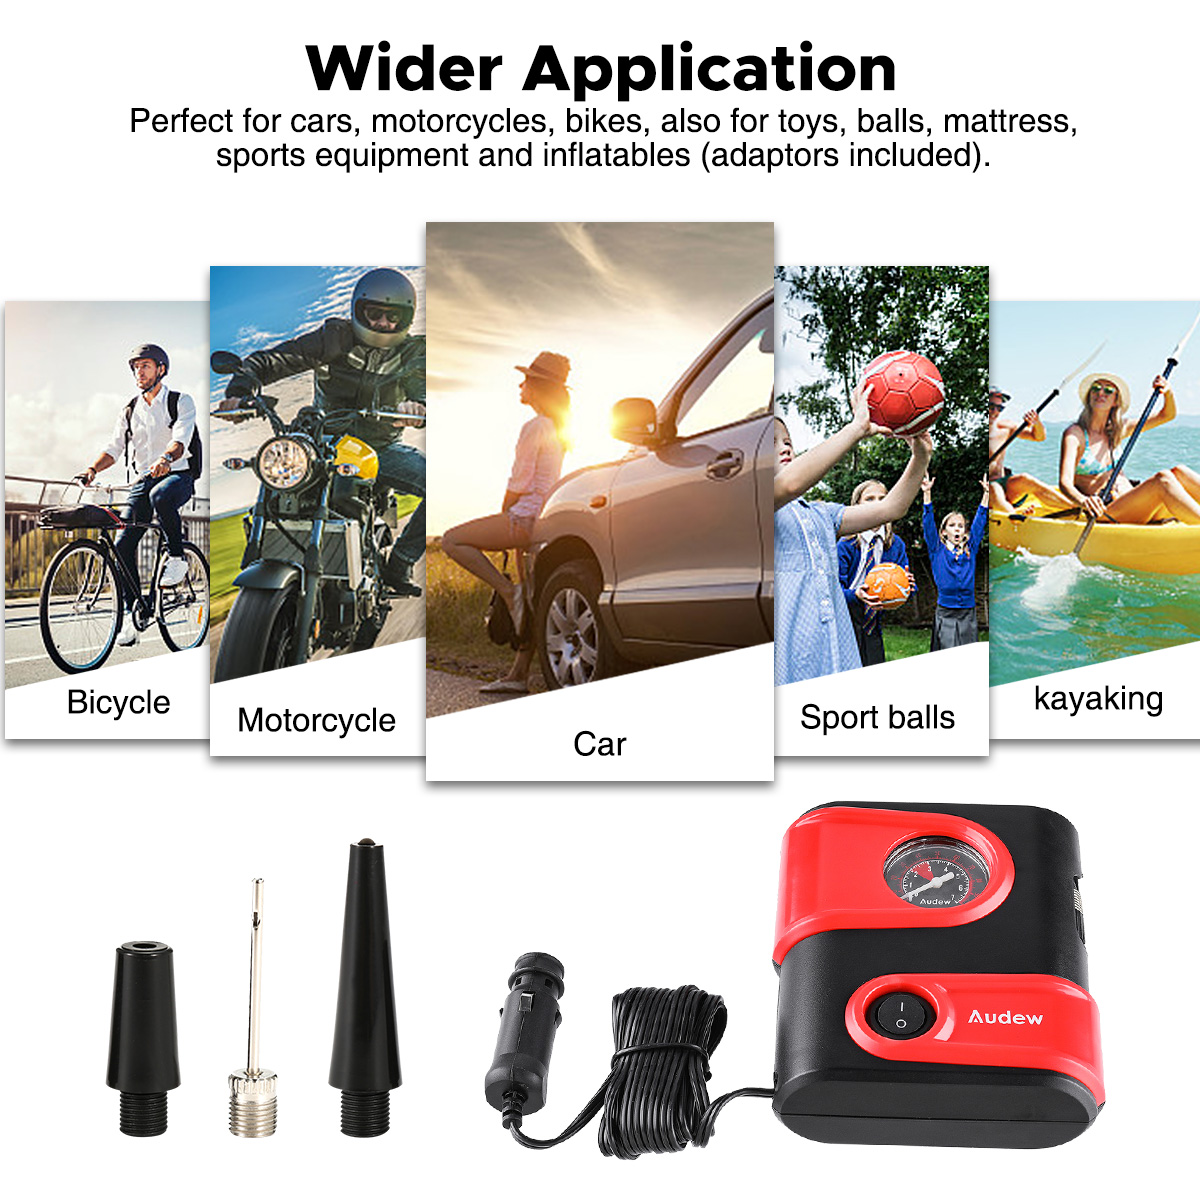 Audew Tire Inflator, Portable Mini Air Compressor Pump with Gauge, 12V DC Auto Tire Pump for Car, Bicycle, Motorcycle, SUV,Basketball and Other Inflatables